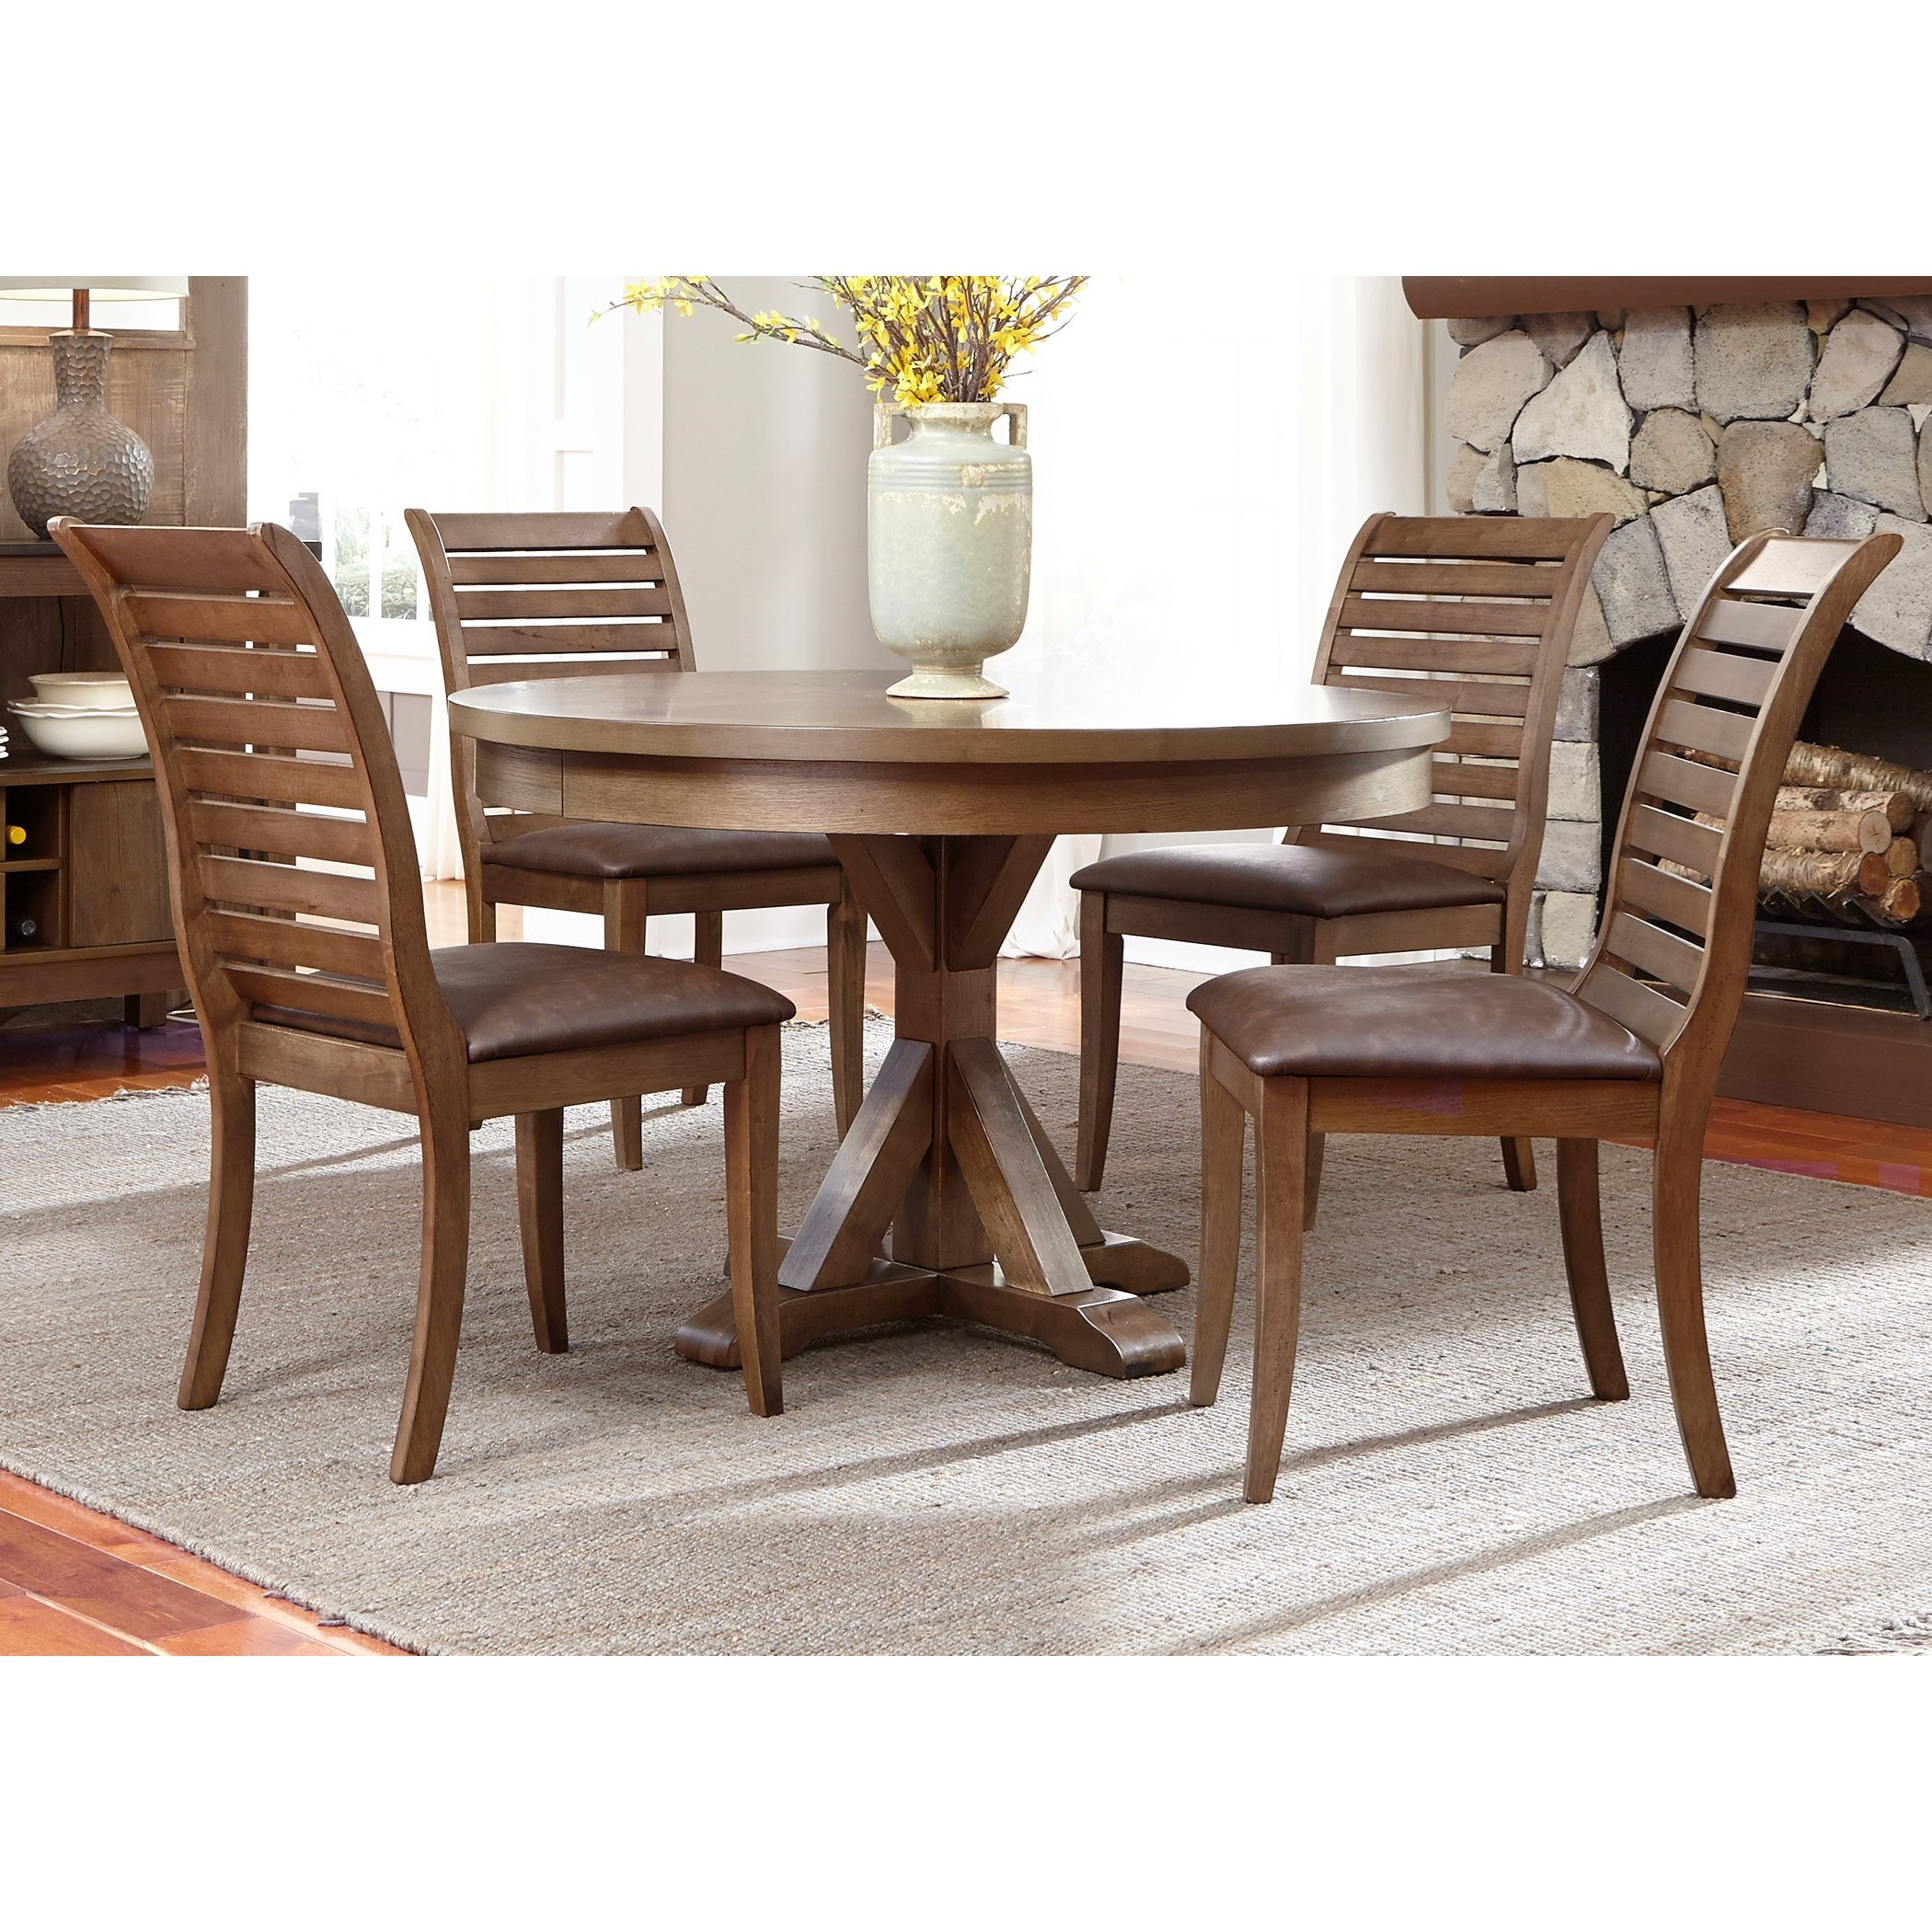 5 Piece Round Table Set with Cushioned Chairs by Liberty Furniture